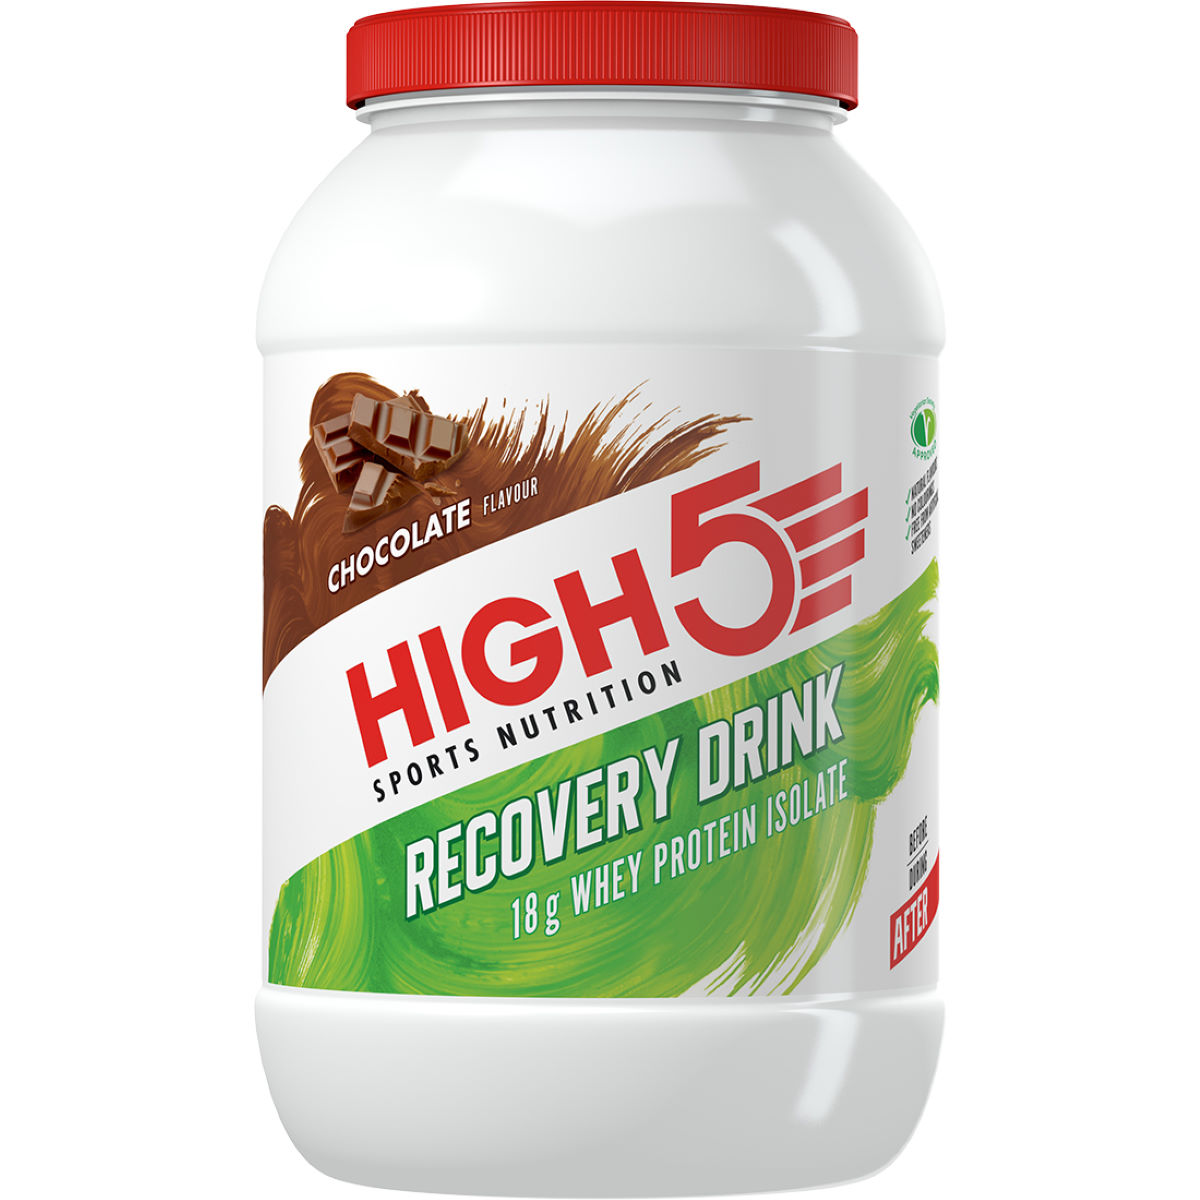 High5 Recovery Drink Powder (1.6kg) - 1.6kg Chocolate